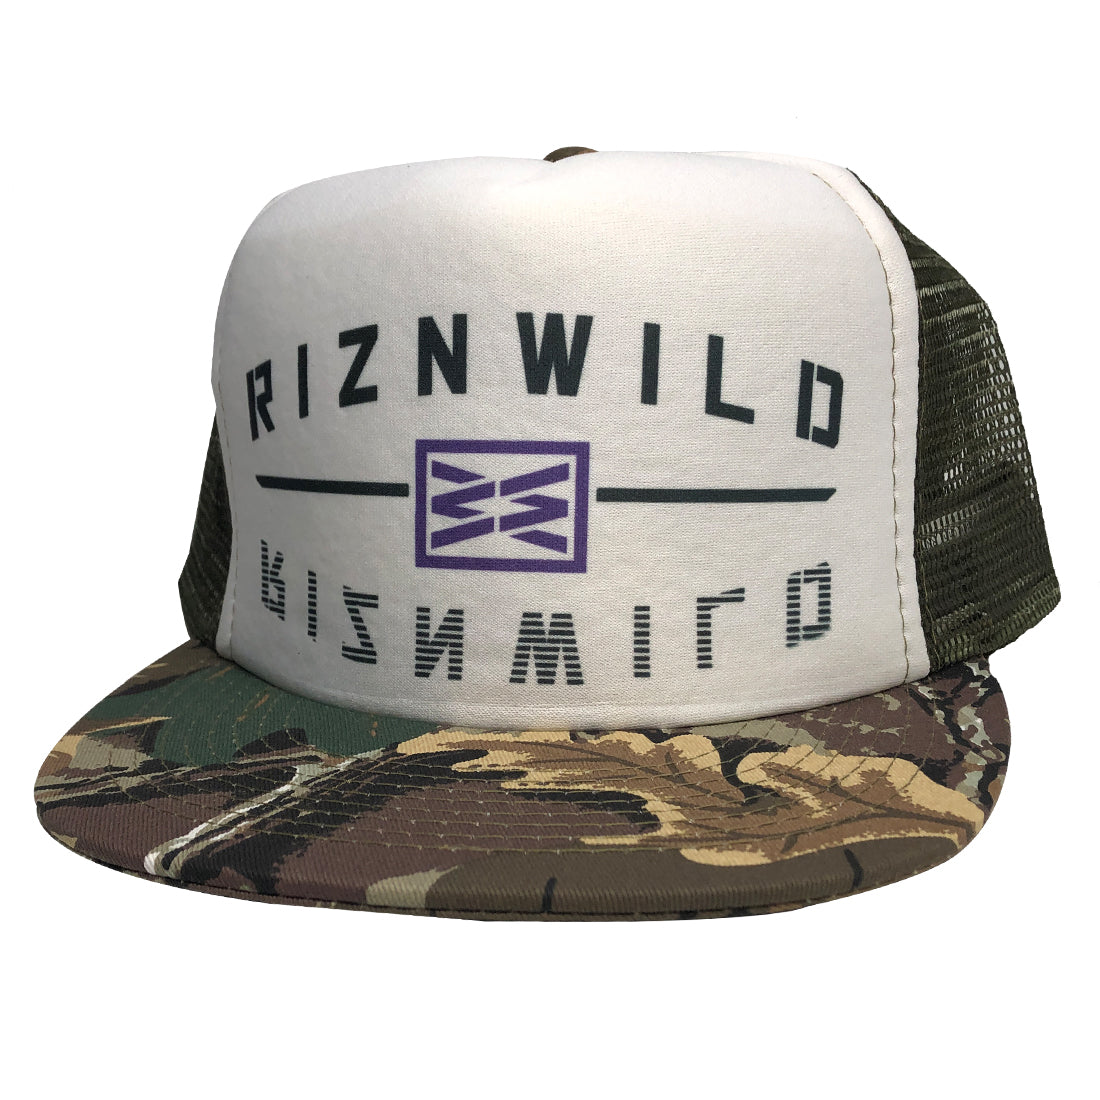 RIZNWILD | Flat Bill Camouflage OTTO Snap 5 Panel hat